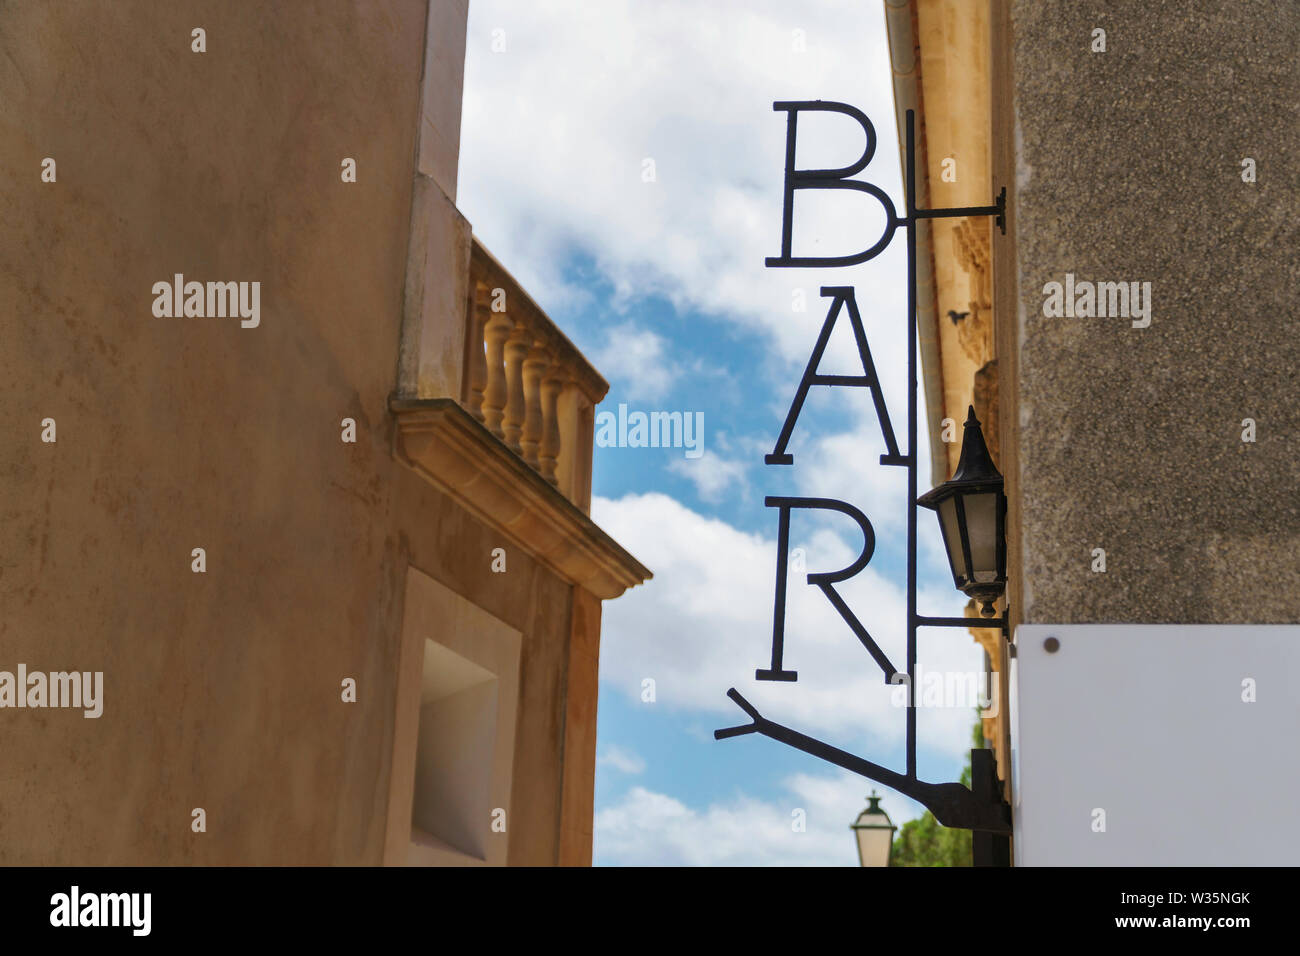 Metal sign with 'BAR' lettering on mediterranean house facade, blue sky with white clouds in the background (close-up, side view, horizontal landscape - Stock Image